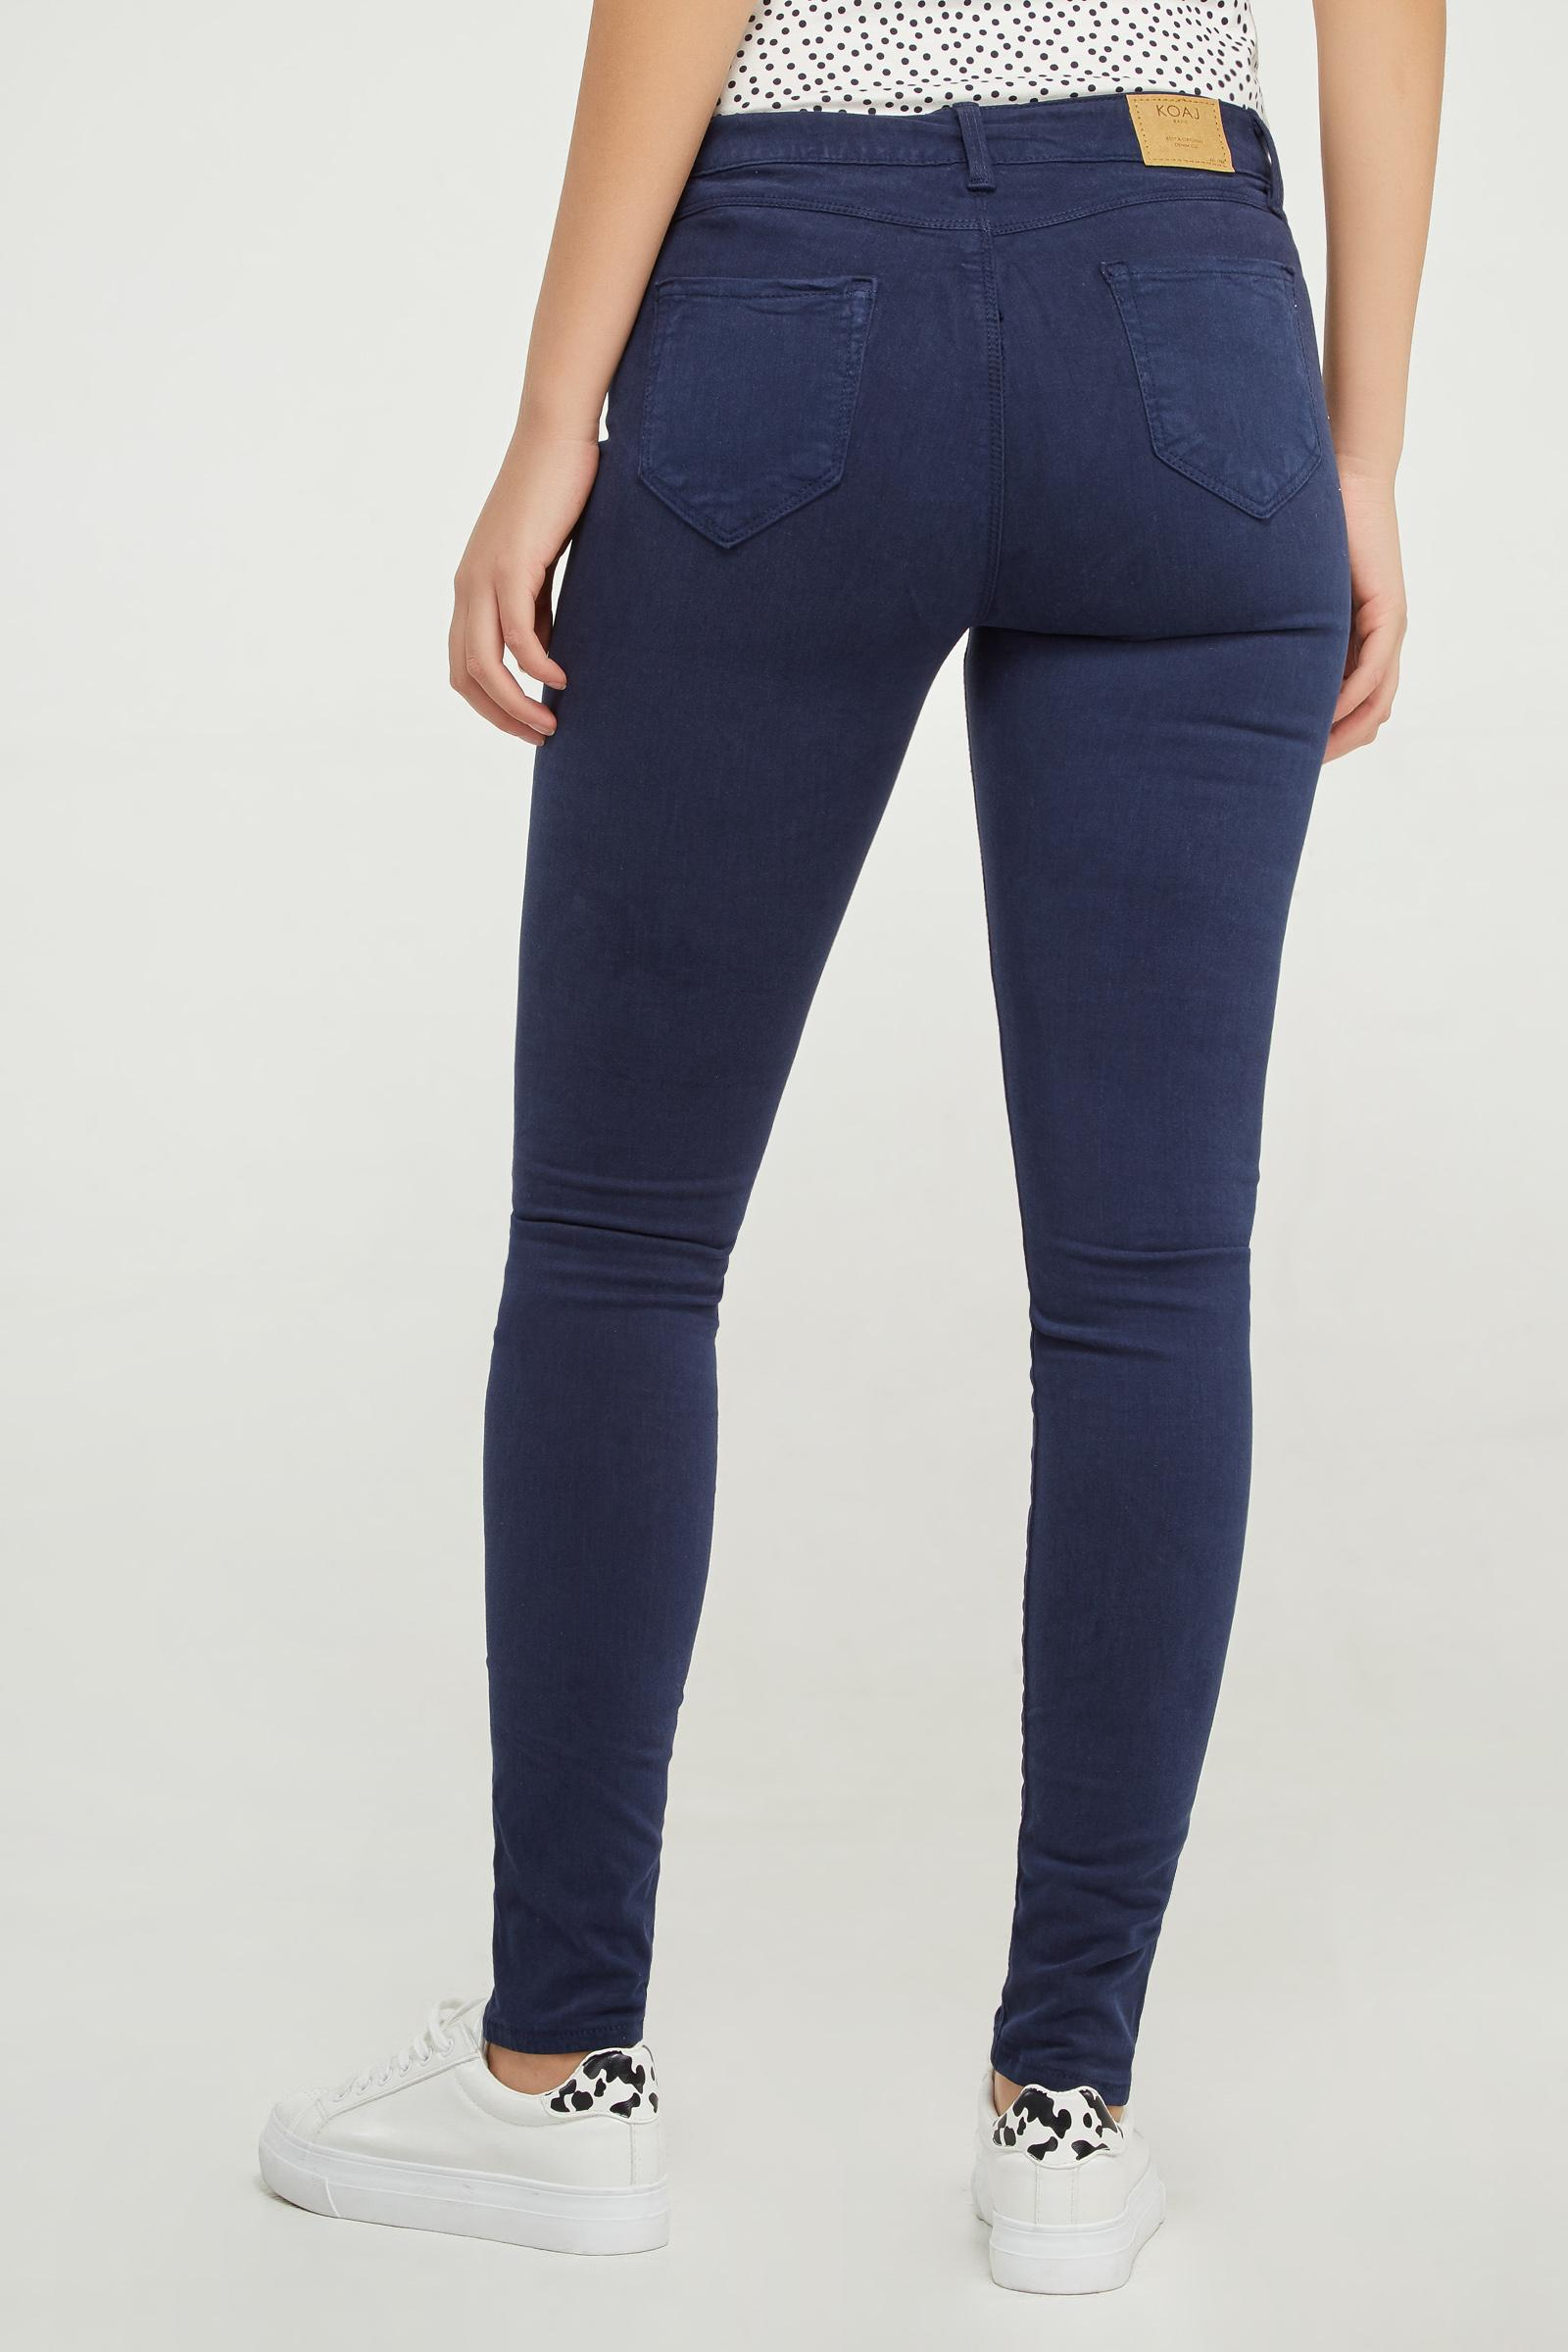 KOAJ-PANTALON KOAJ DRILL JEGGING TM 5 3/19